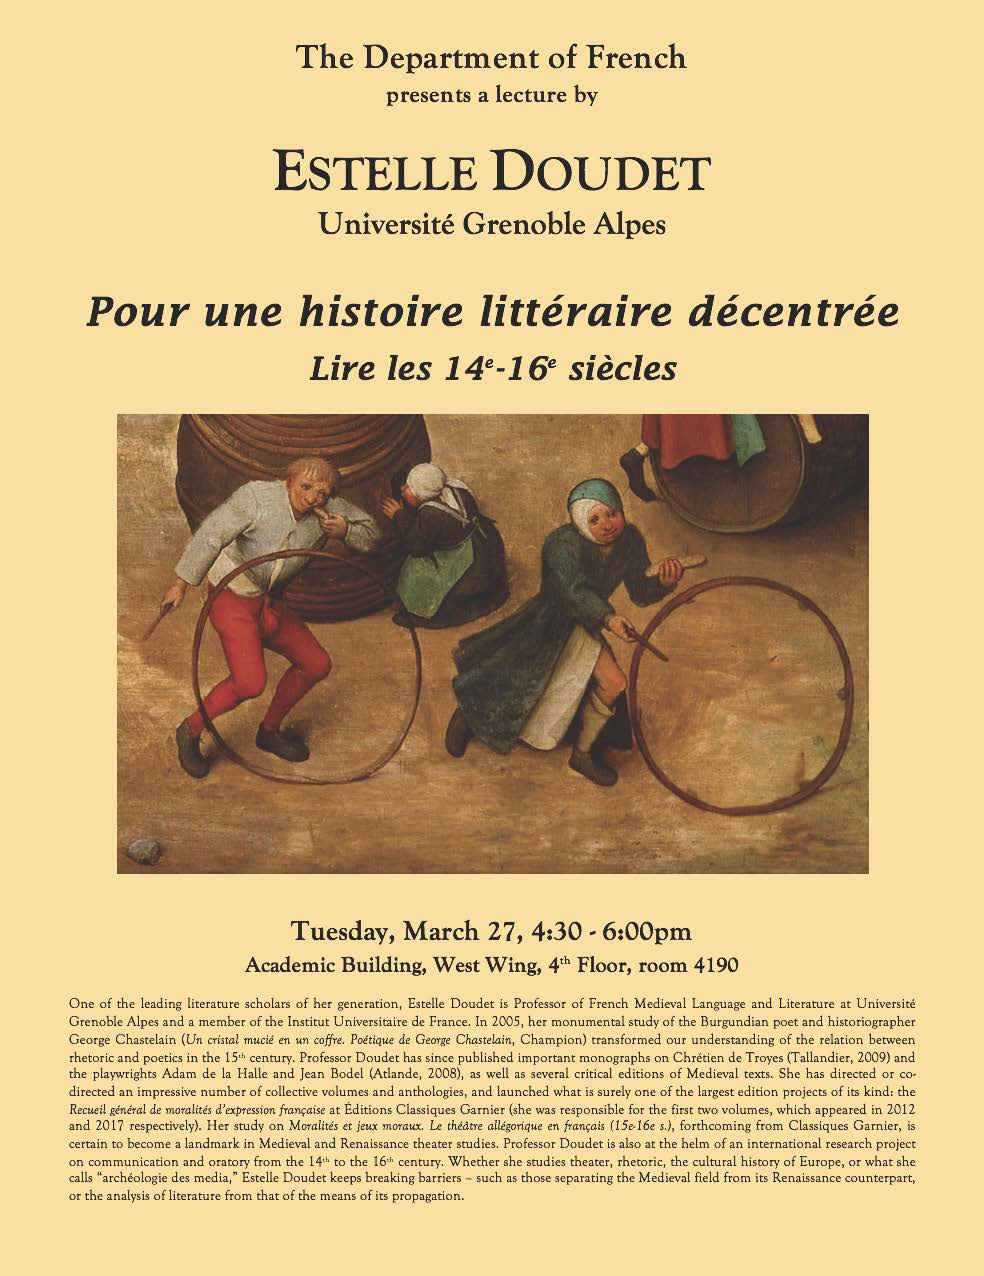 The Department of French presents a lecture by Estelle Doudet (Universite Grenoble Alpes) - Tuesday, March 27, 4:30 - 6:00pm, Academic Building, West Wing, 4th Floor, room 4190